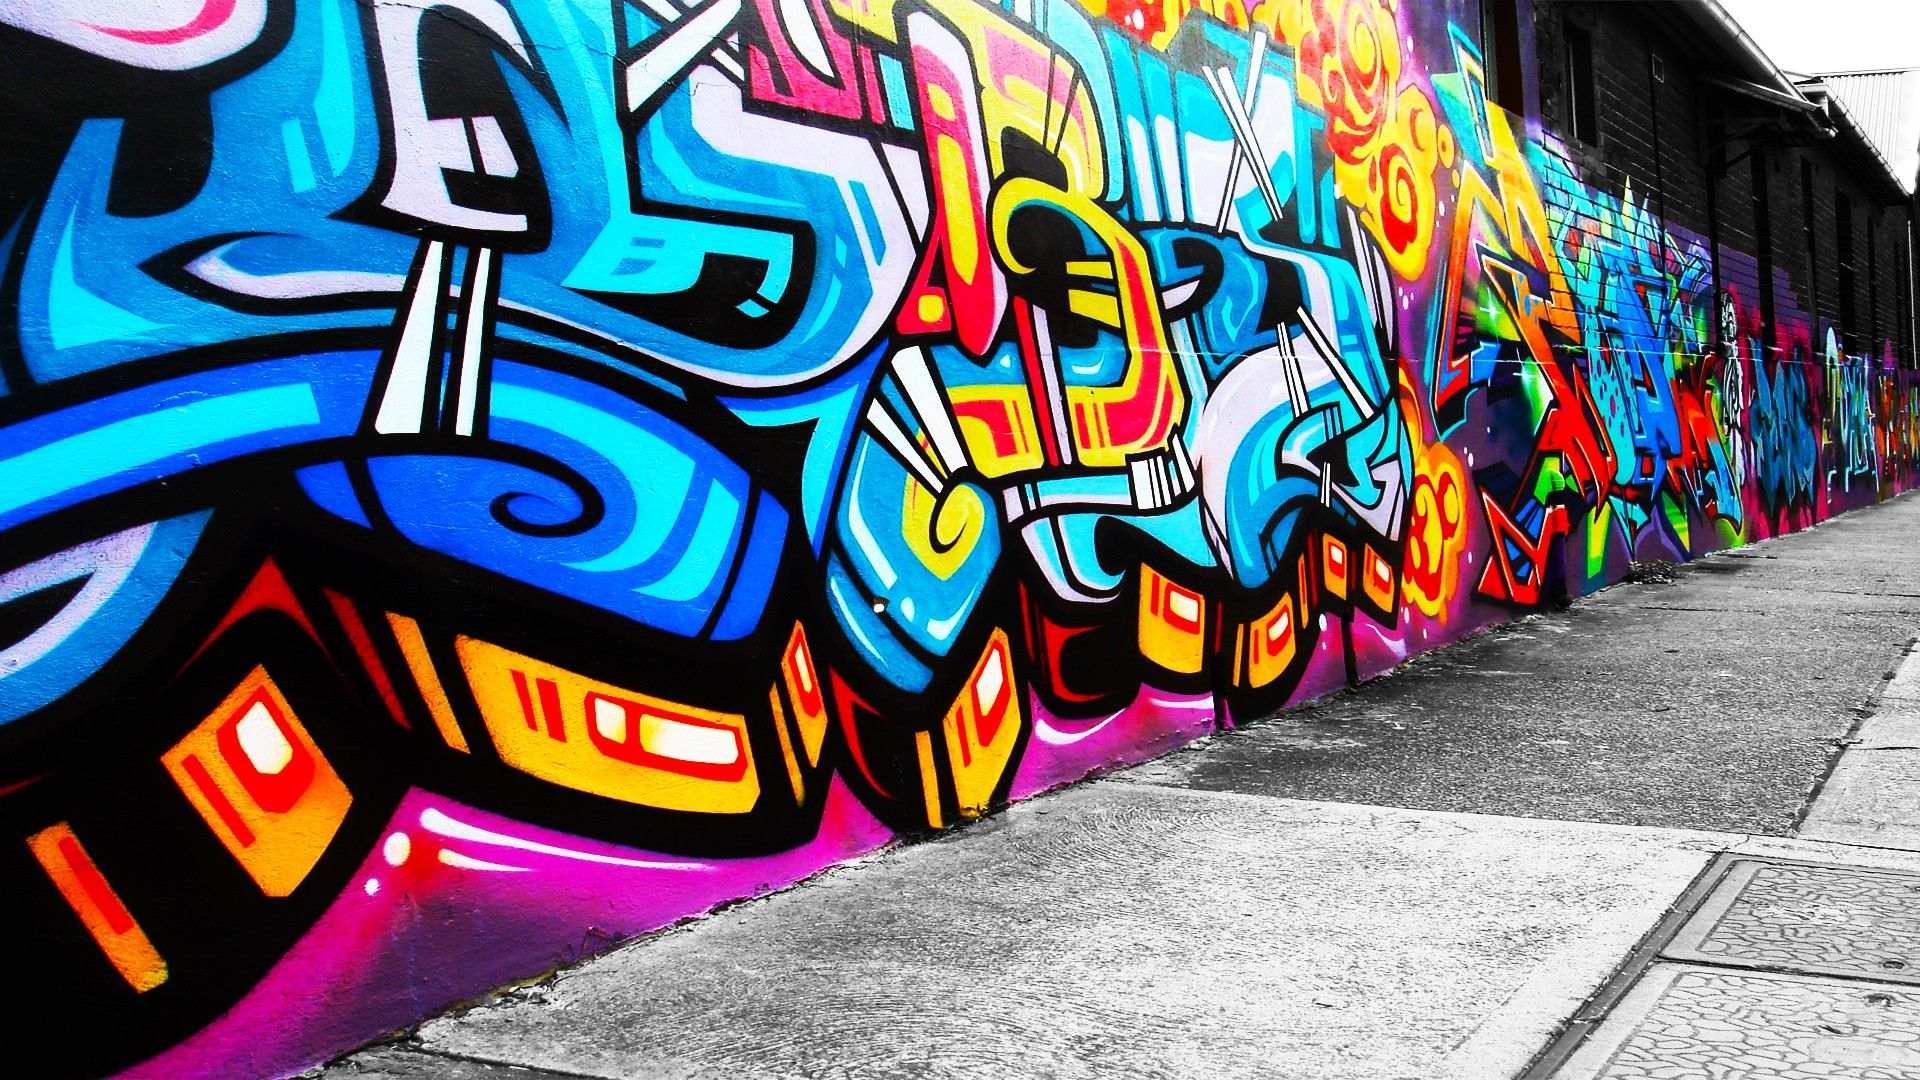 Graffiti art for sale melbourne - Artistic Graffiti Street Art Free Desktop Wall 38903 Wallpaper